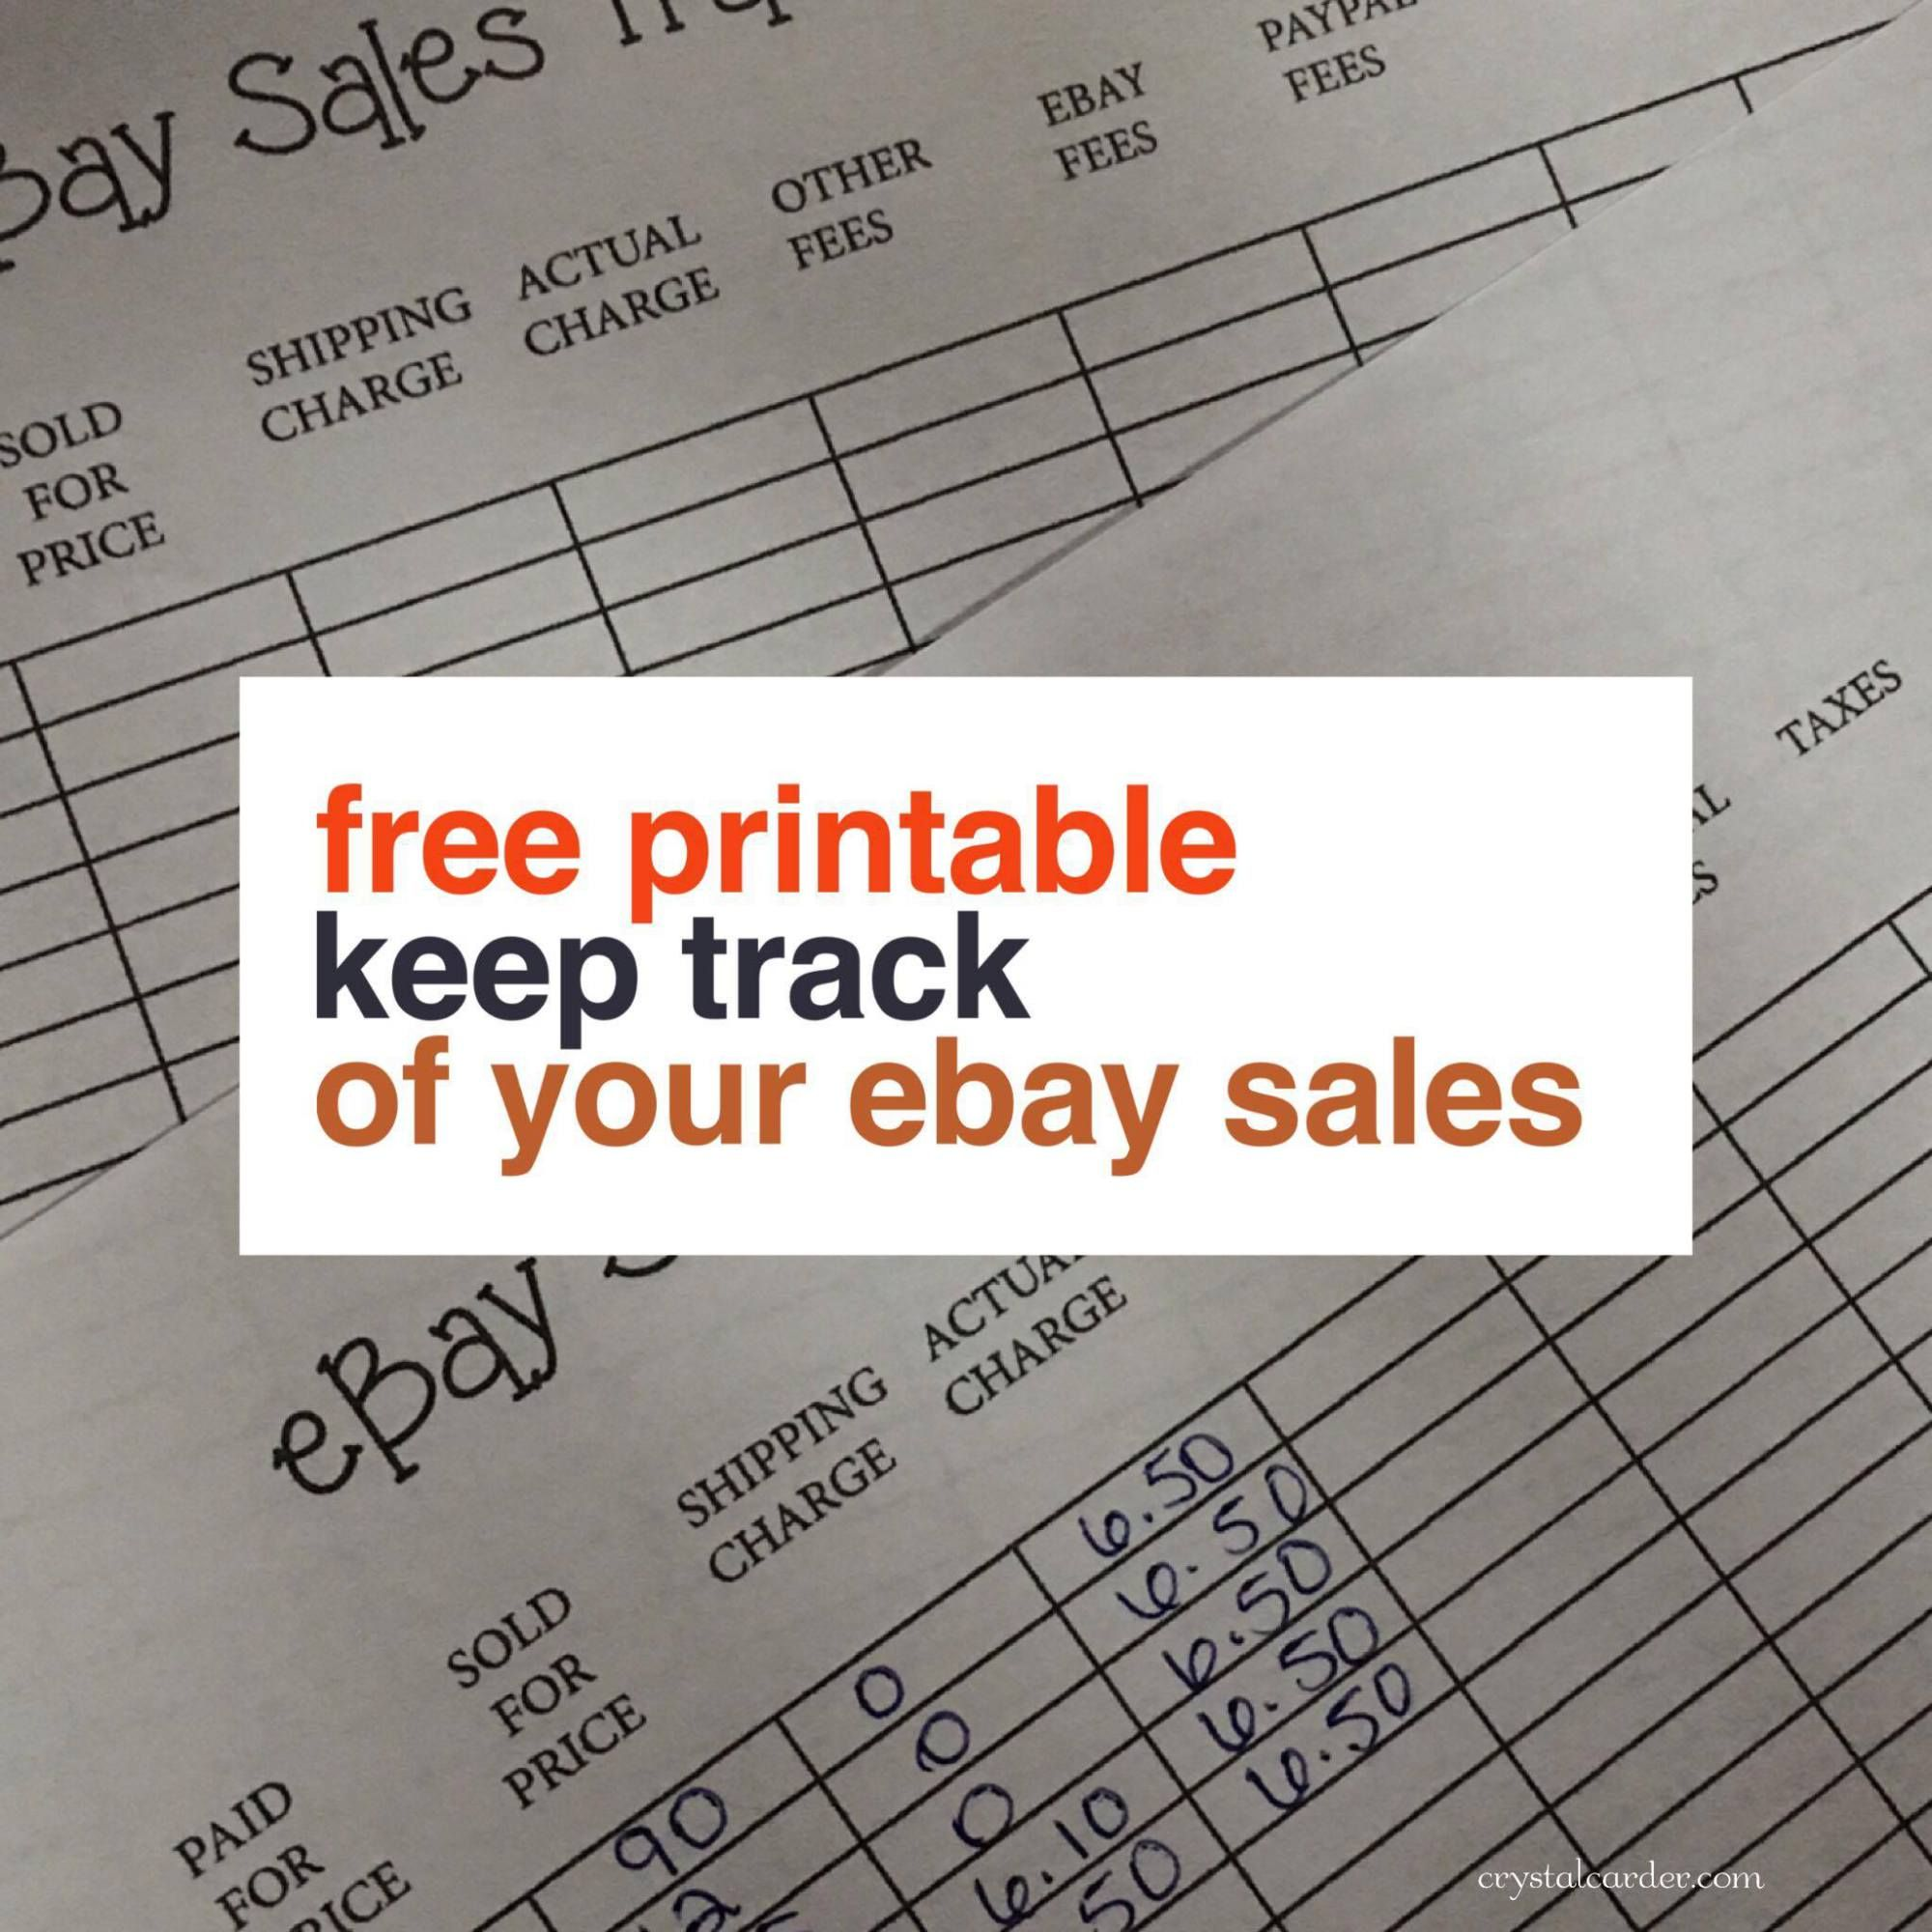 free ebay sales tracker printable crystal carder